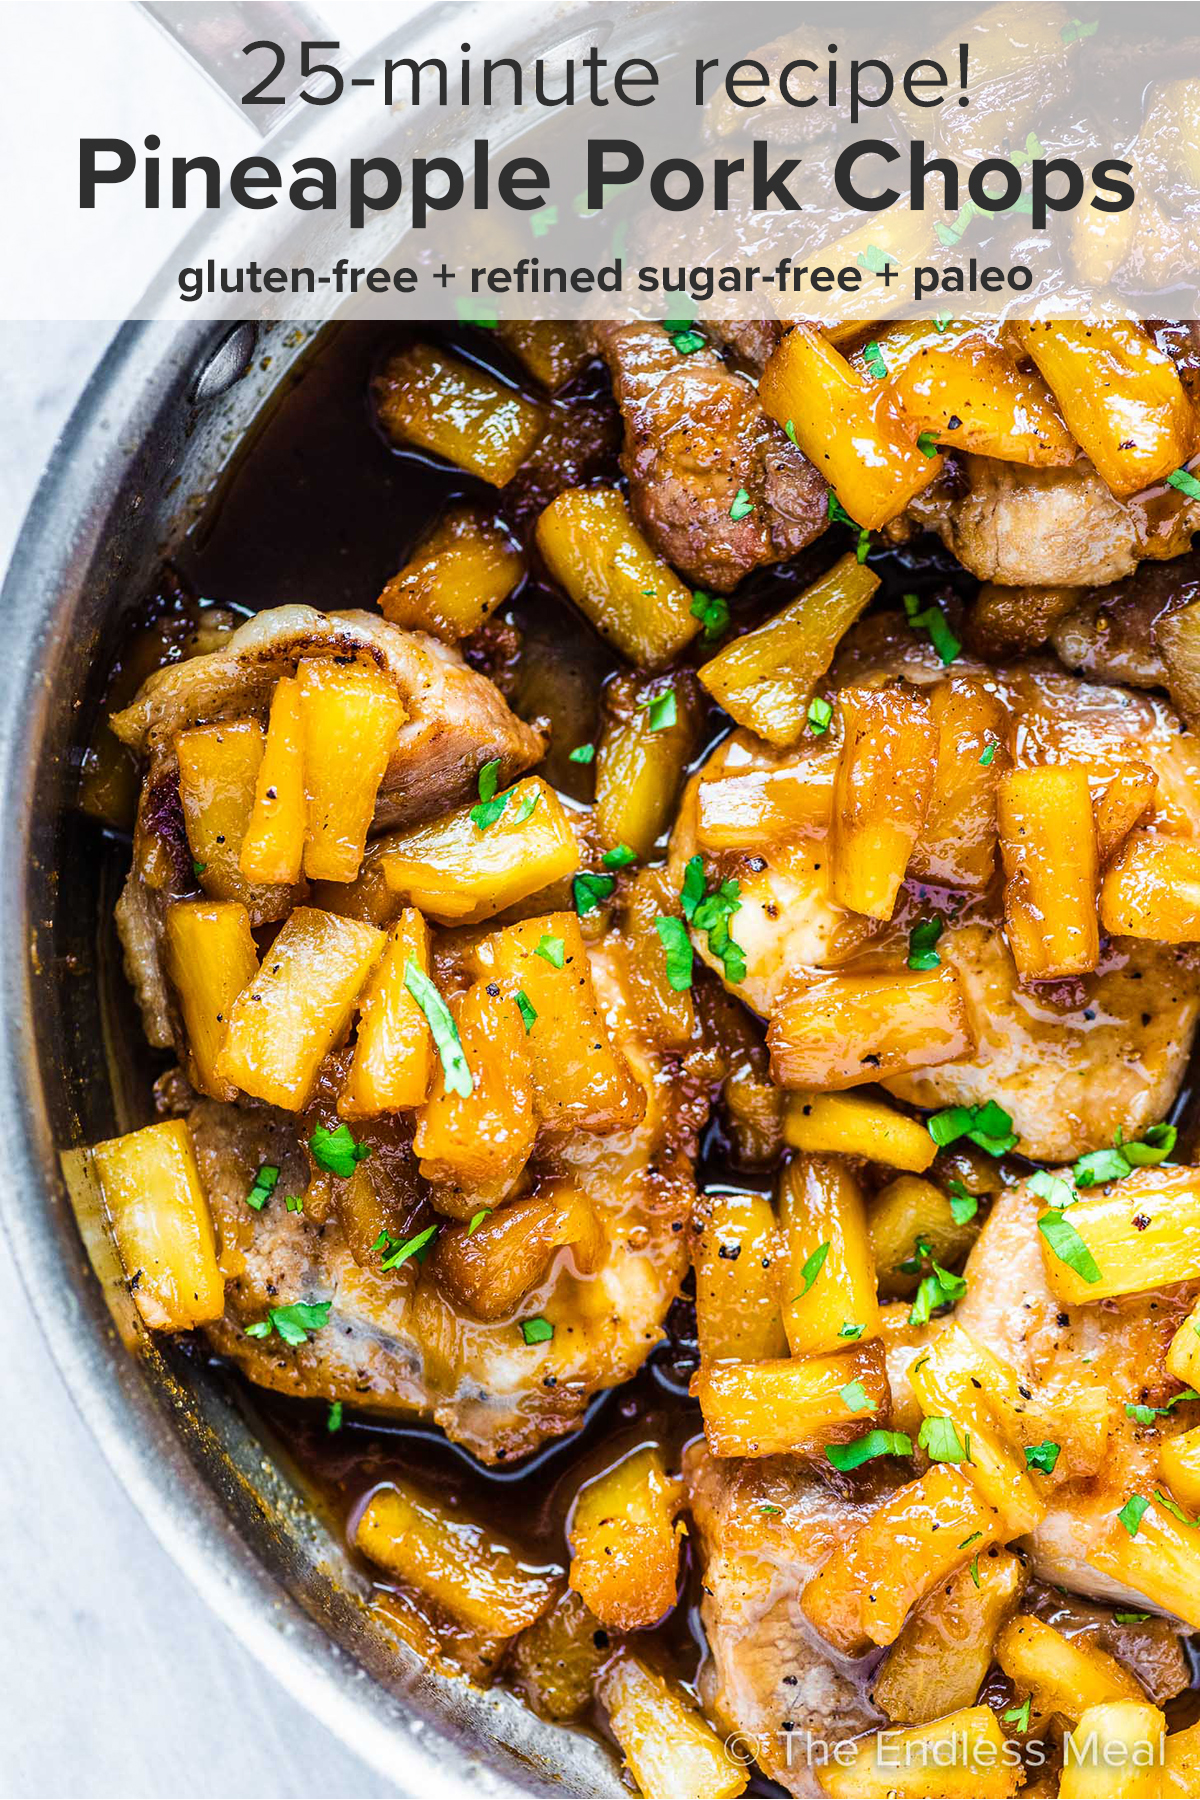 Pineapple pork chops in a pan with the recipe title on top of the picture.